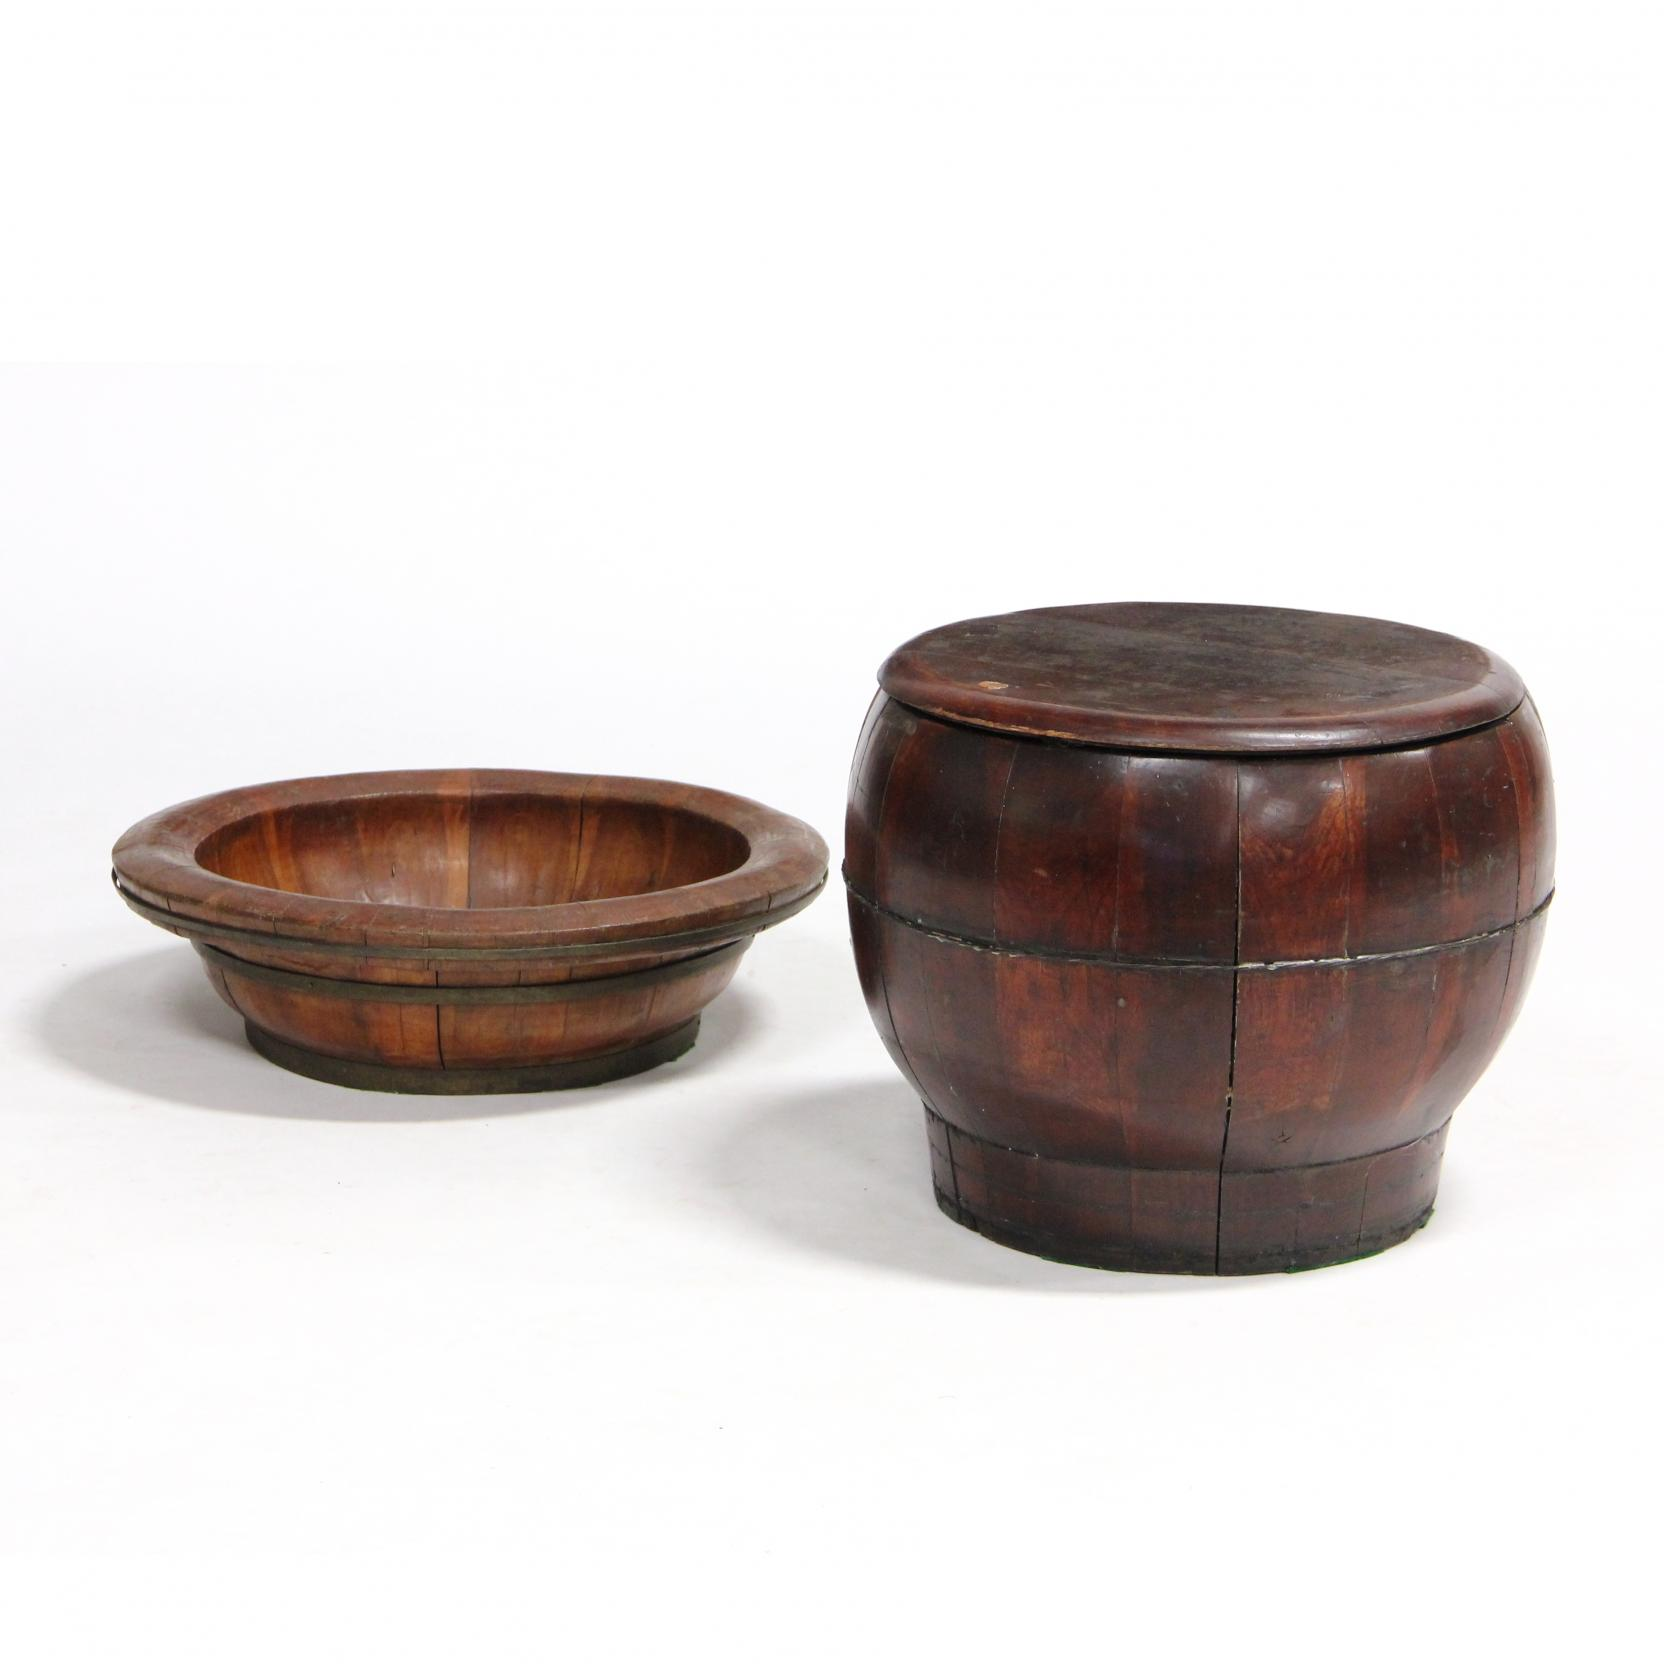 a-chinese-lidded-box-and-bowl